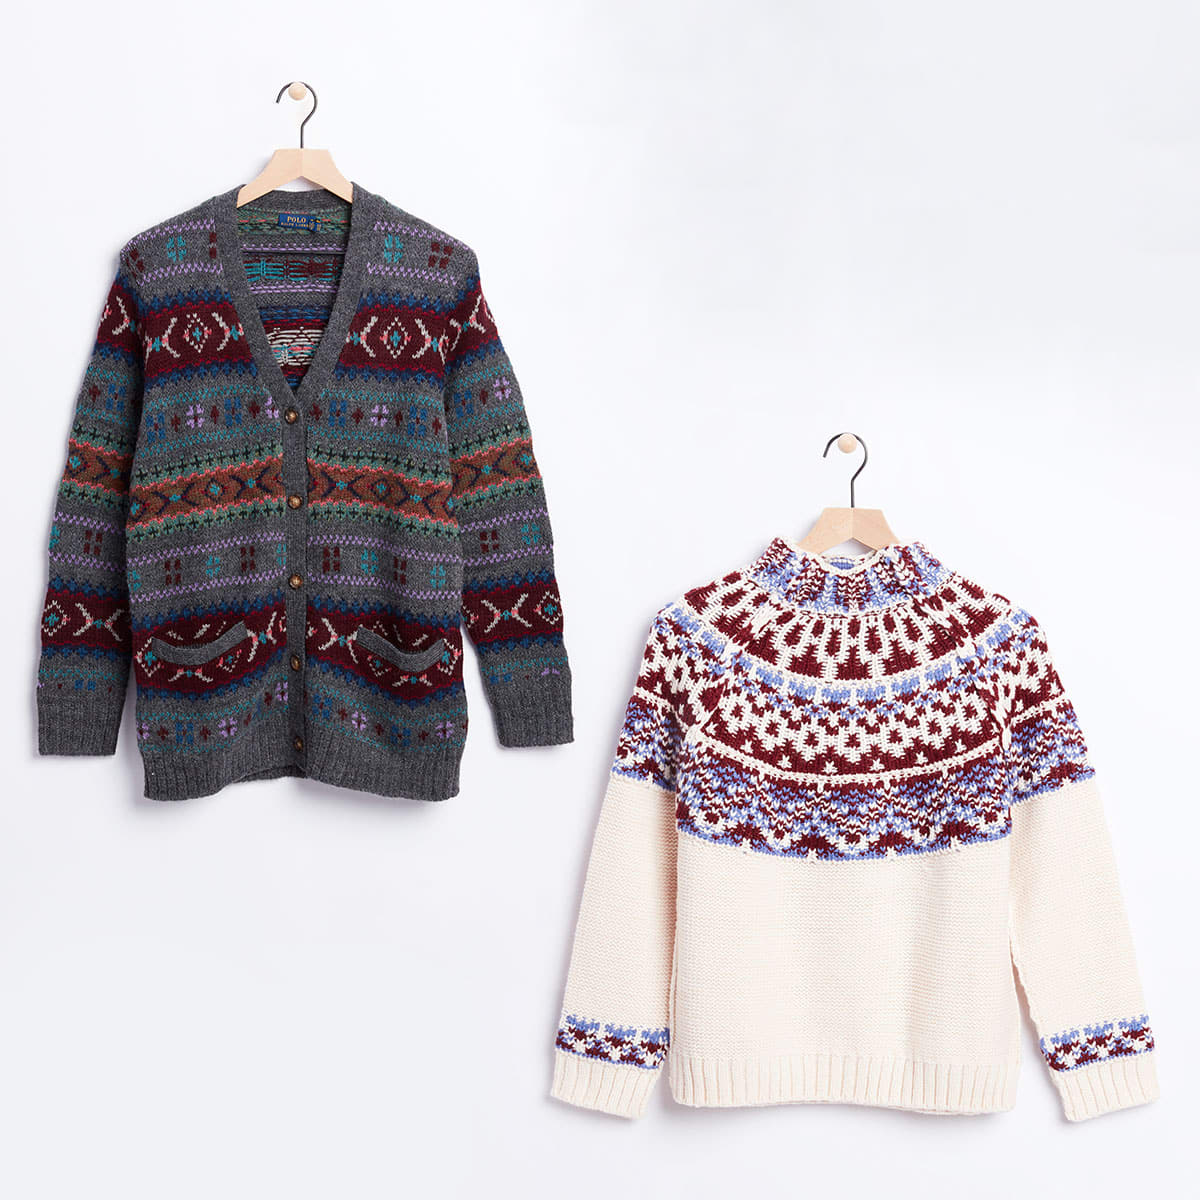 Traditional Fairisle sweaters